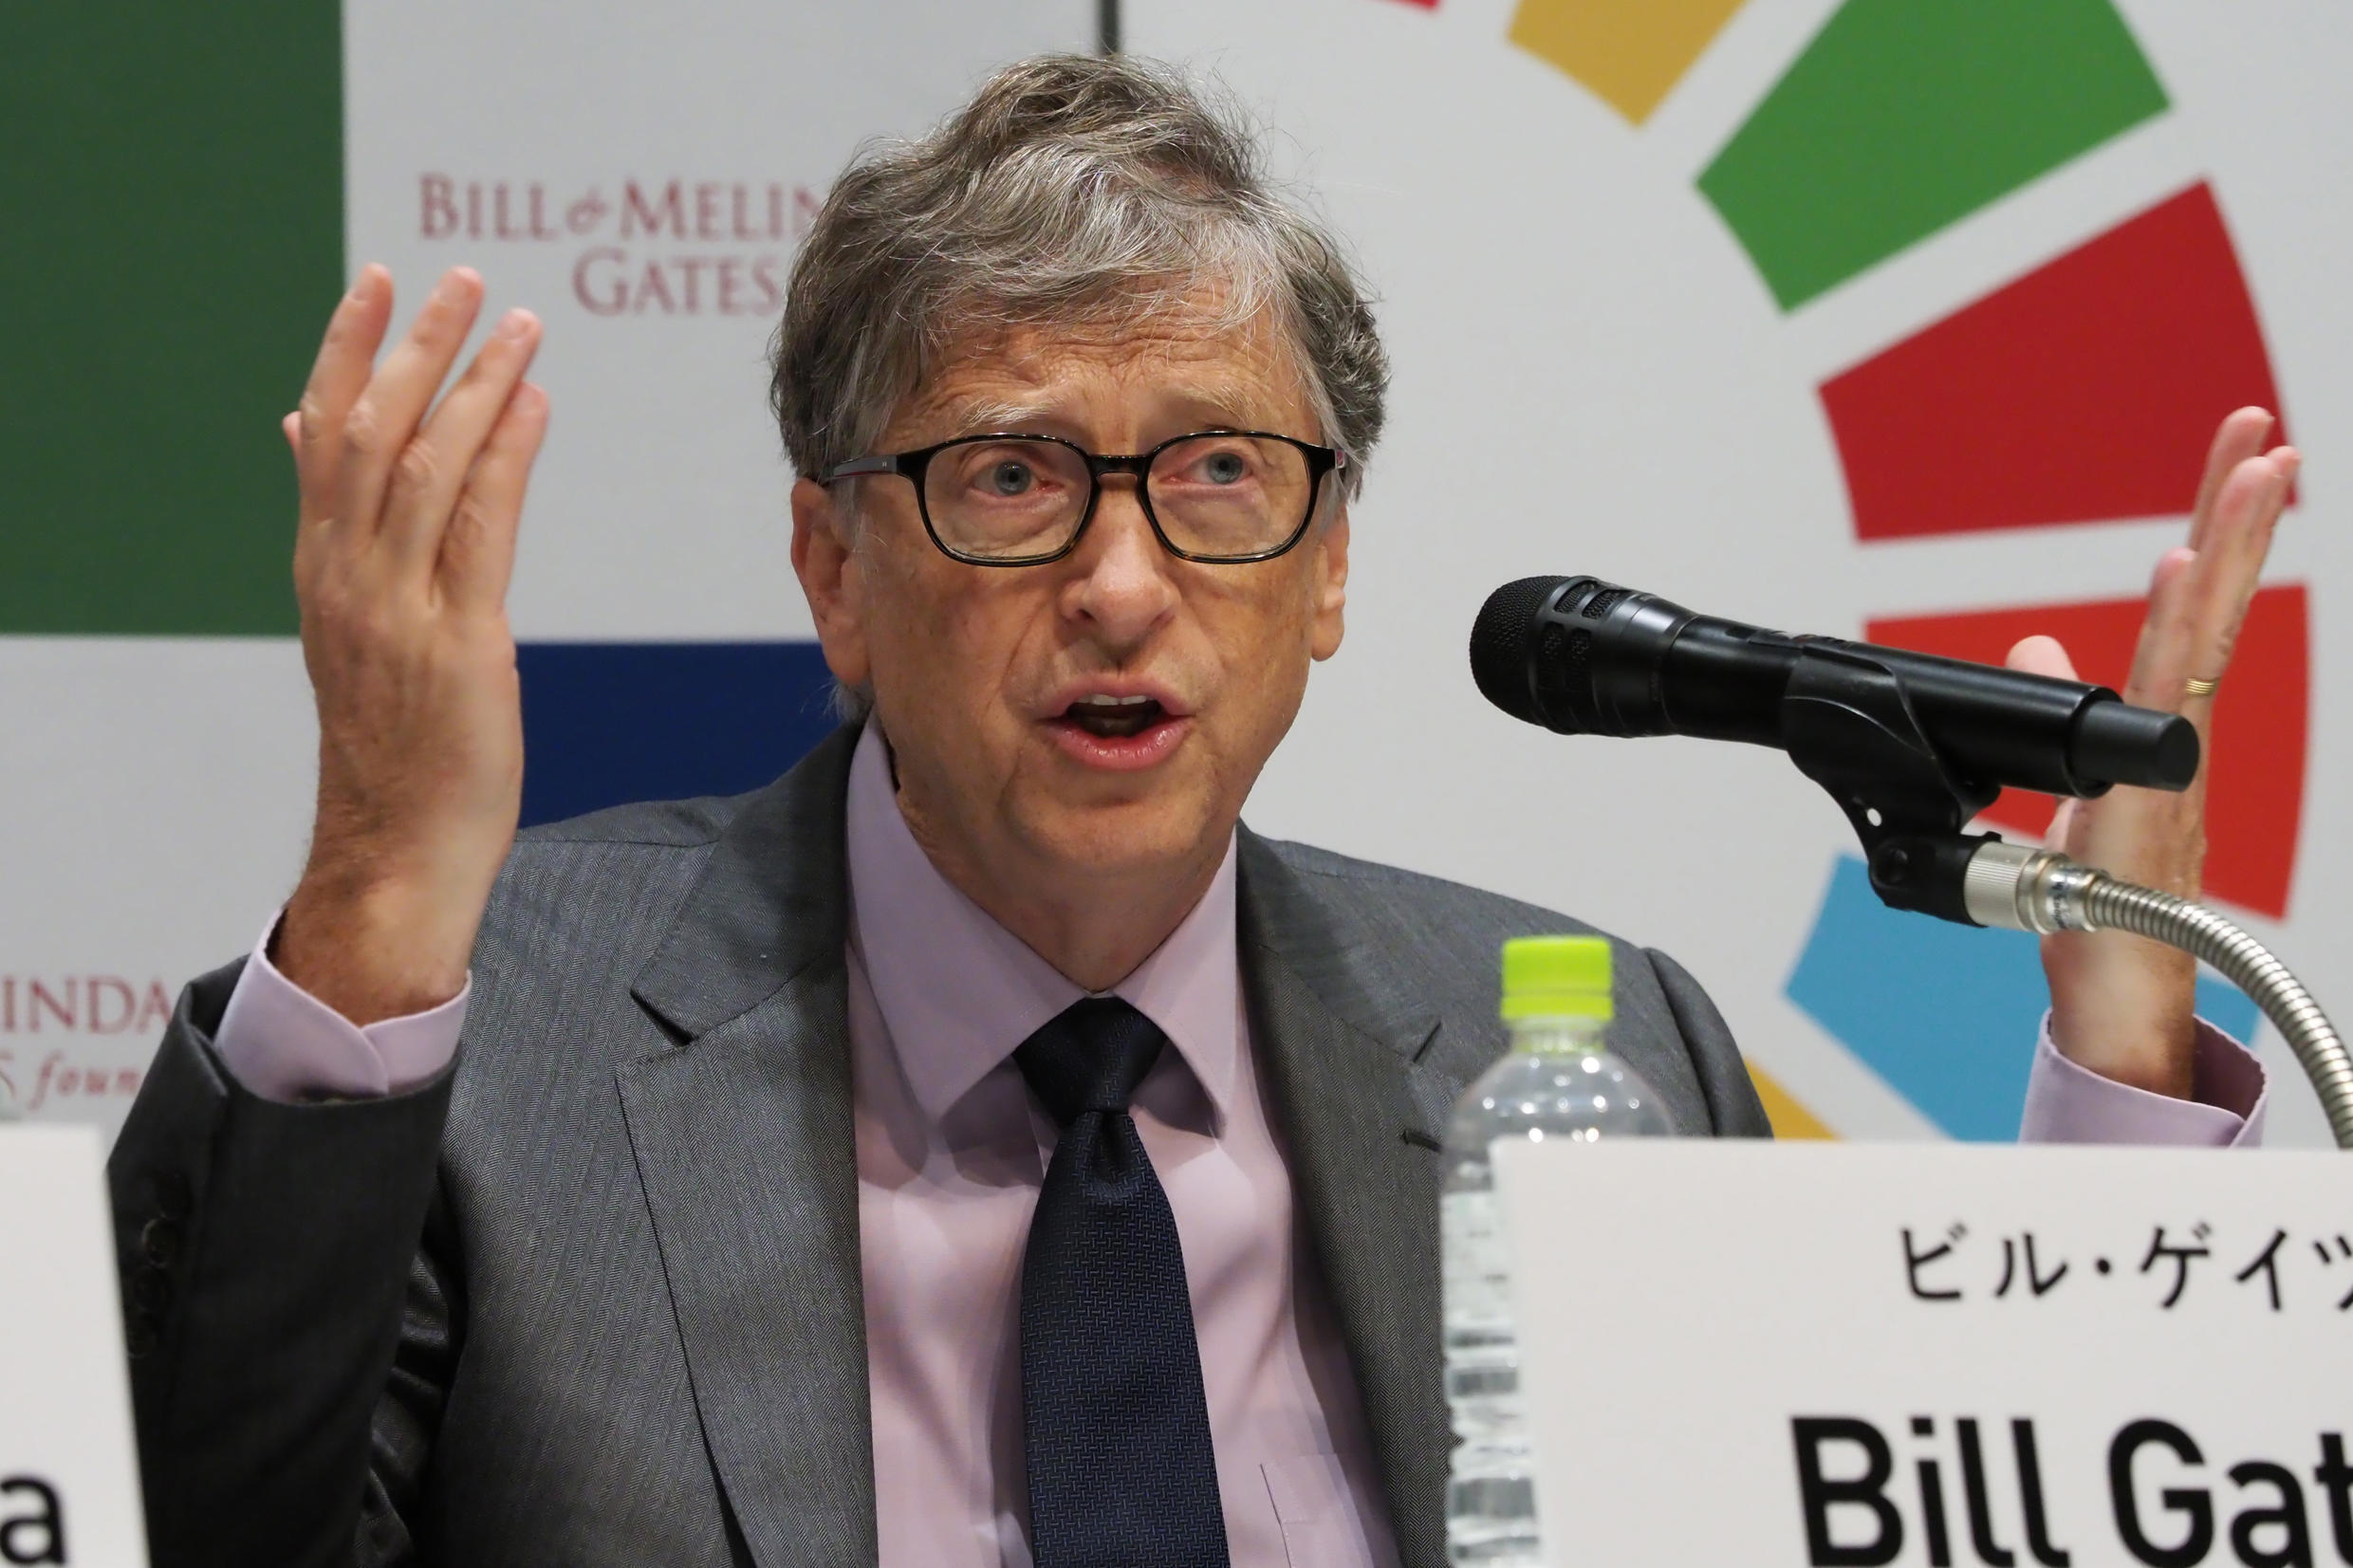 Bill Gates' foundation is a major donor to the fight against the coronavirus